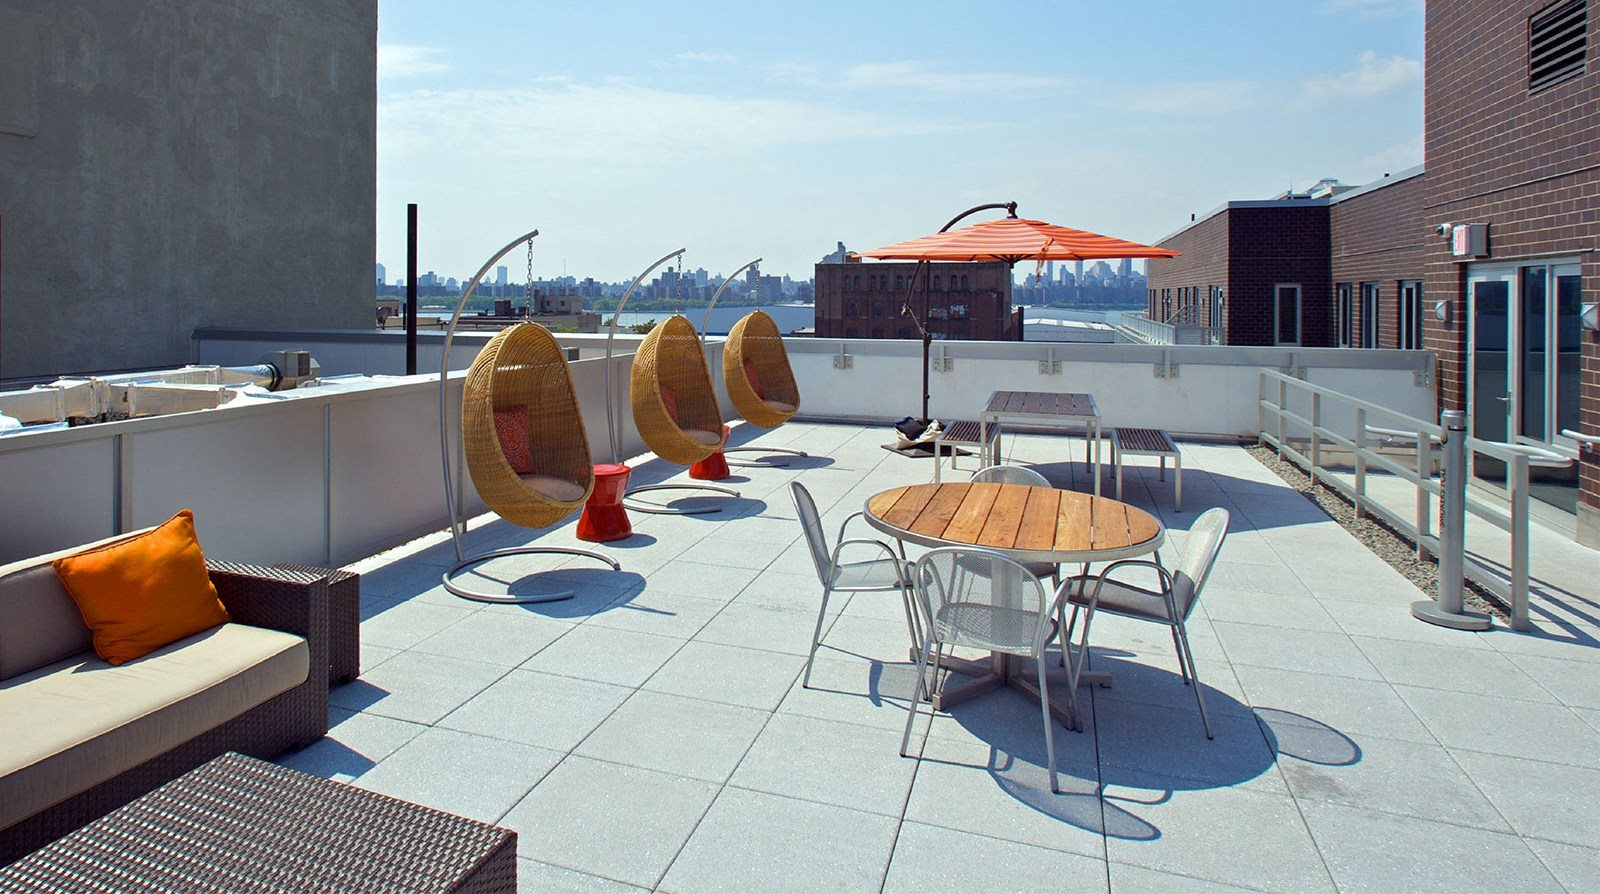 34 Berry | Apartments in Brooklyn, NY